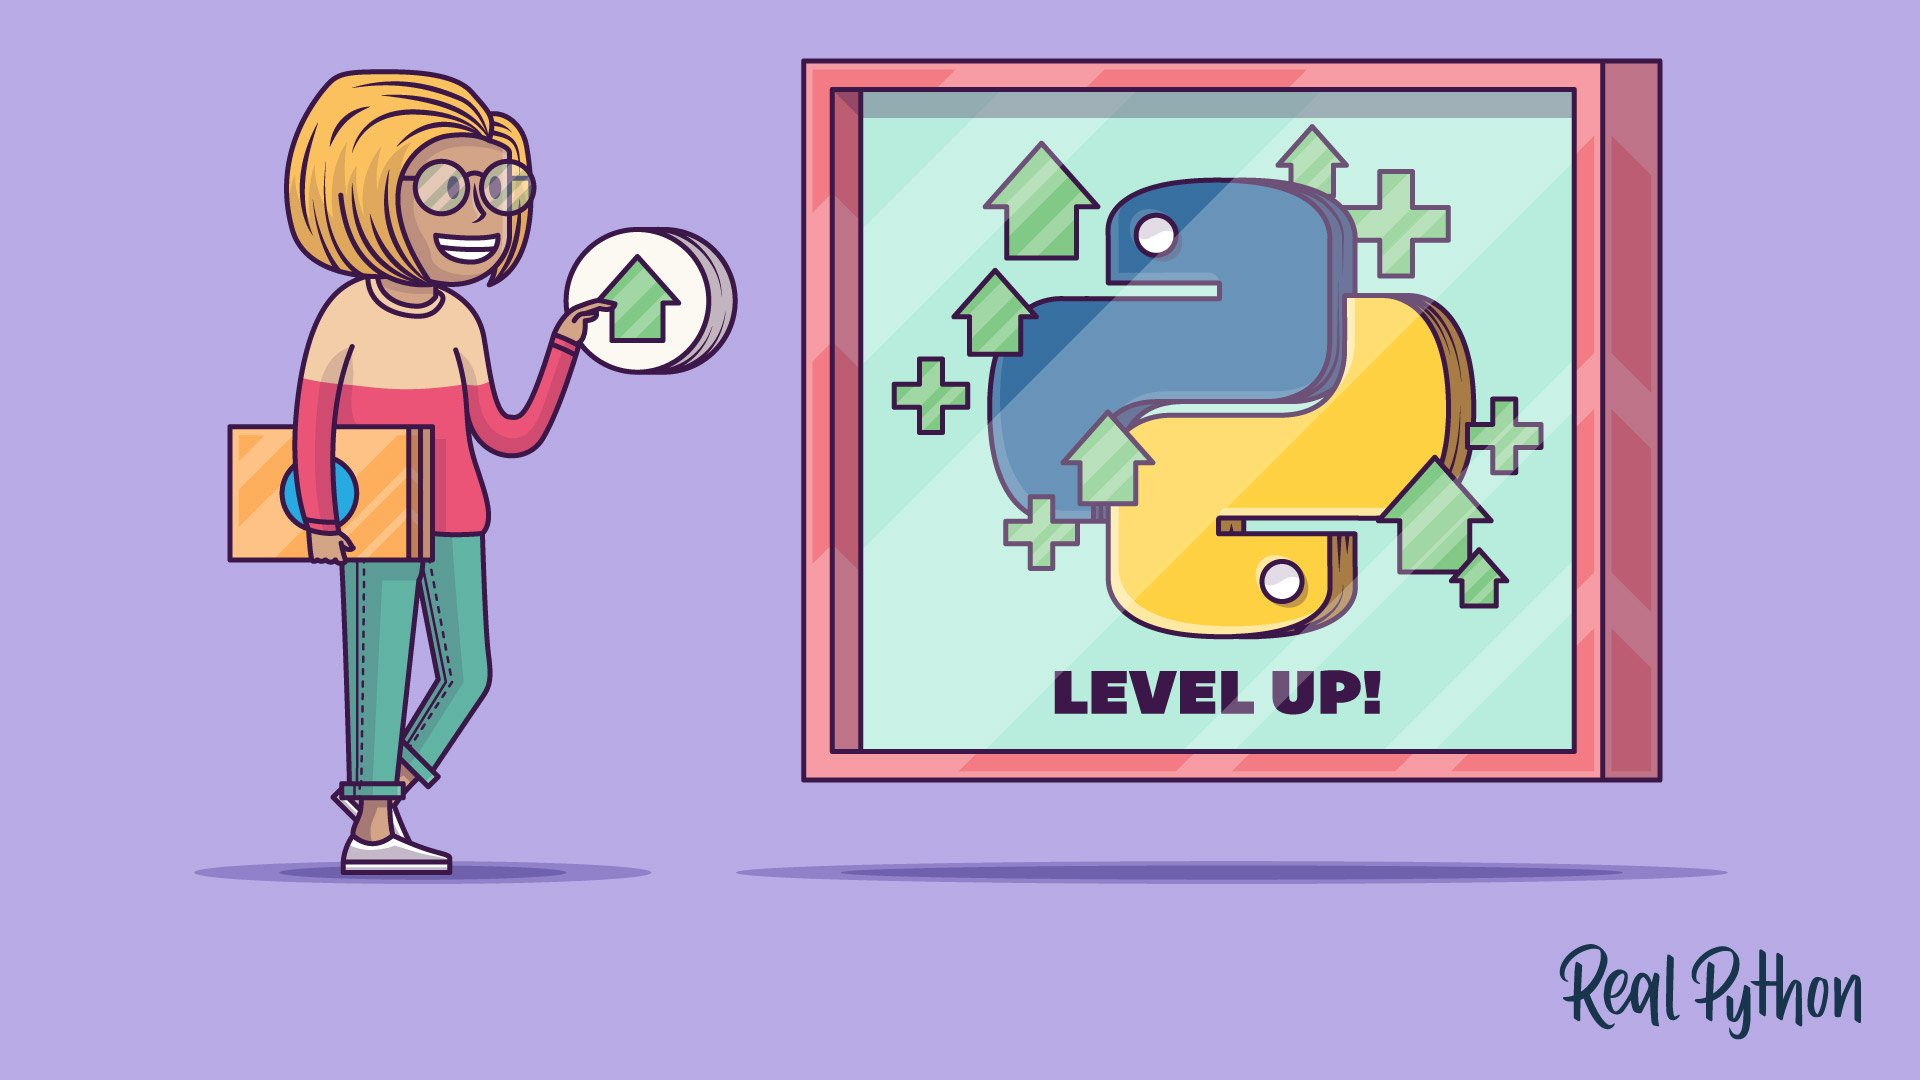 How do I take my Python skills to the next level? – Real Python